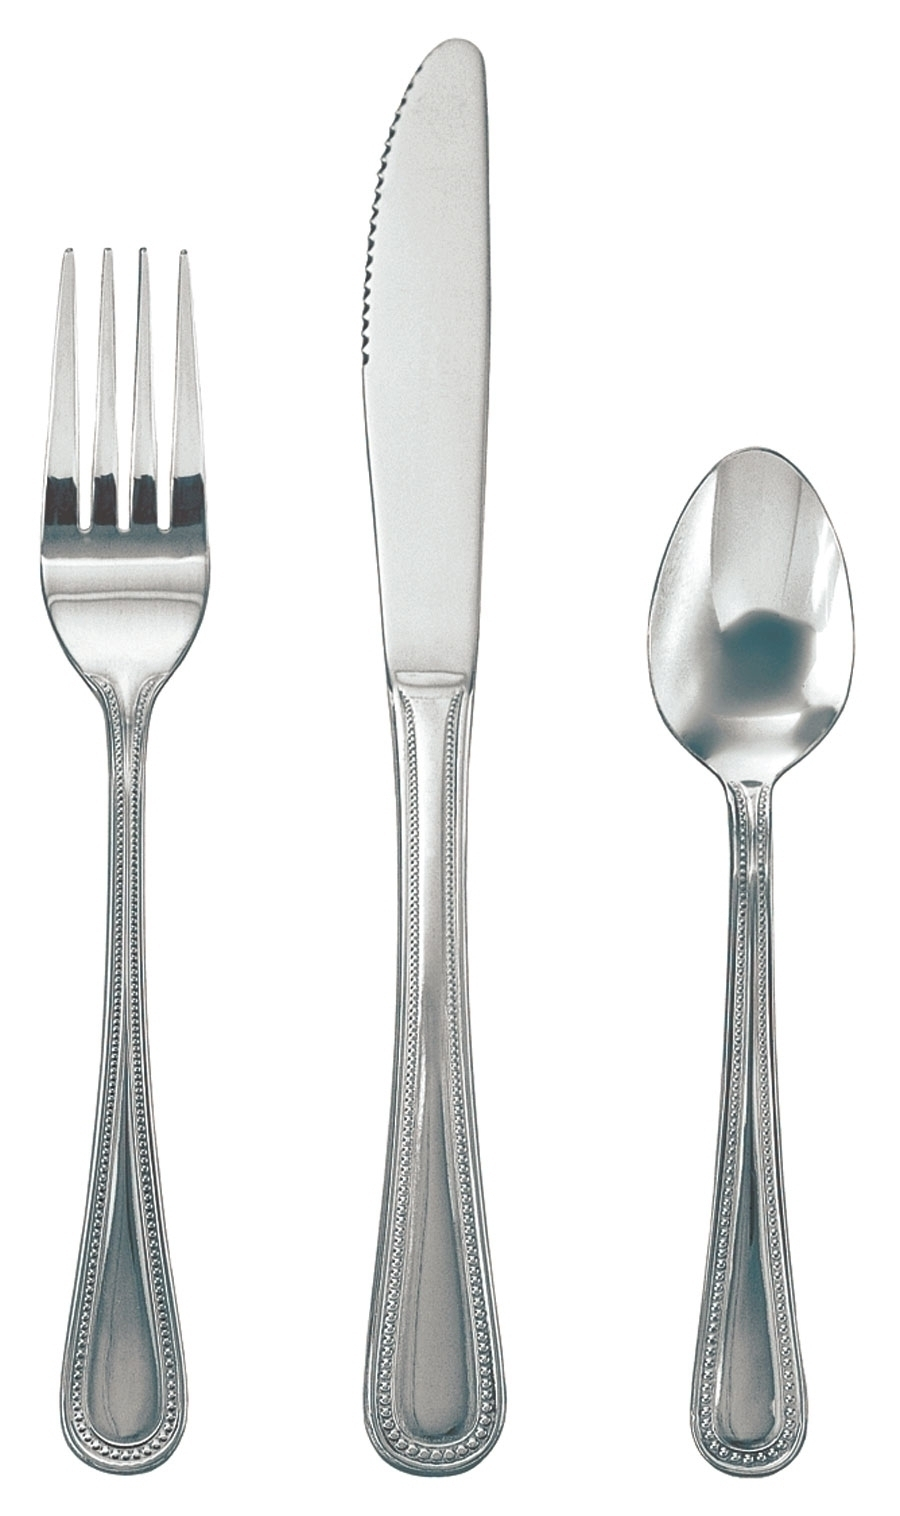 PL-81 Update International - Pearl Teaspoon 2.0mm Mirror Finish